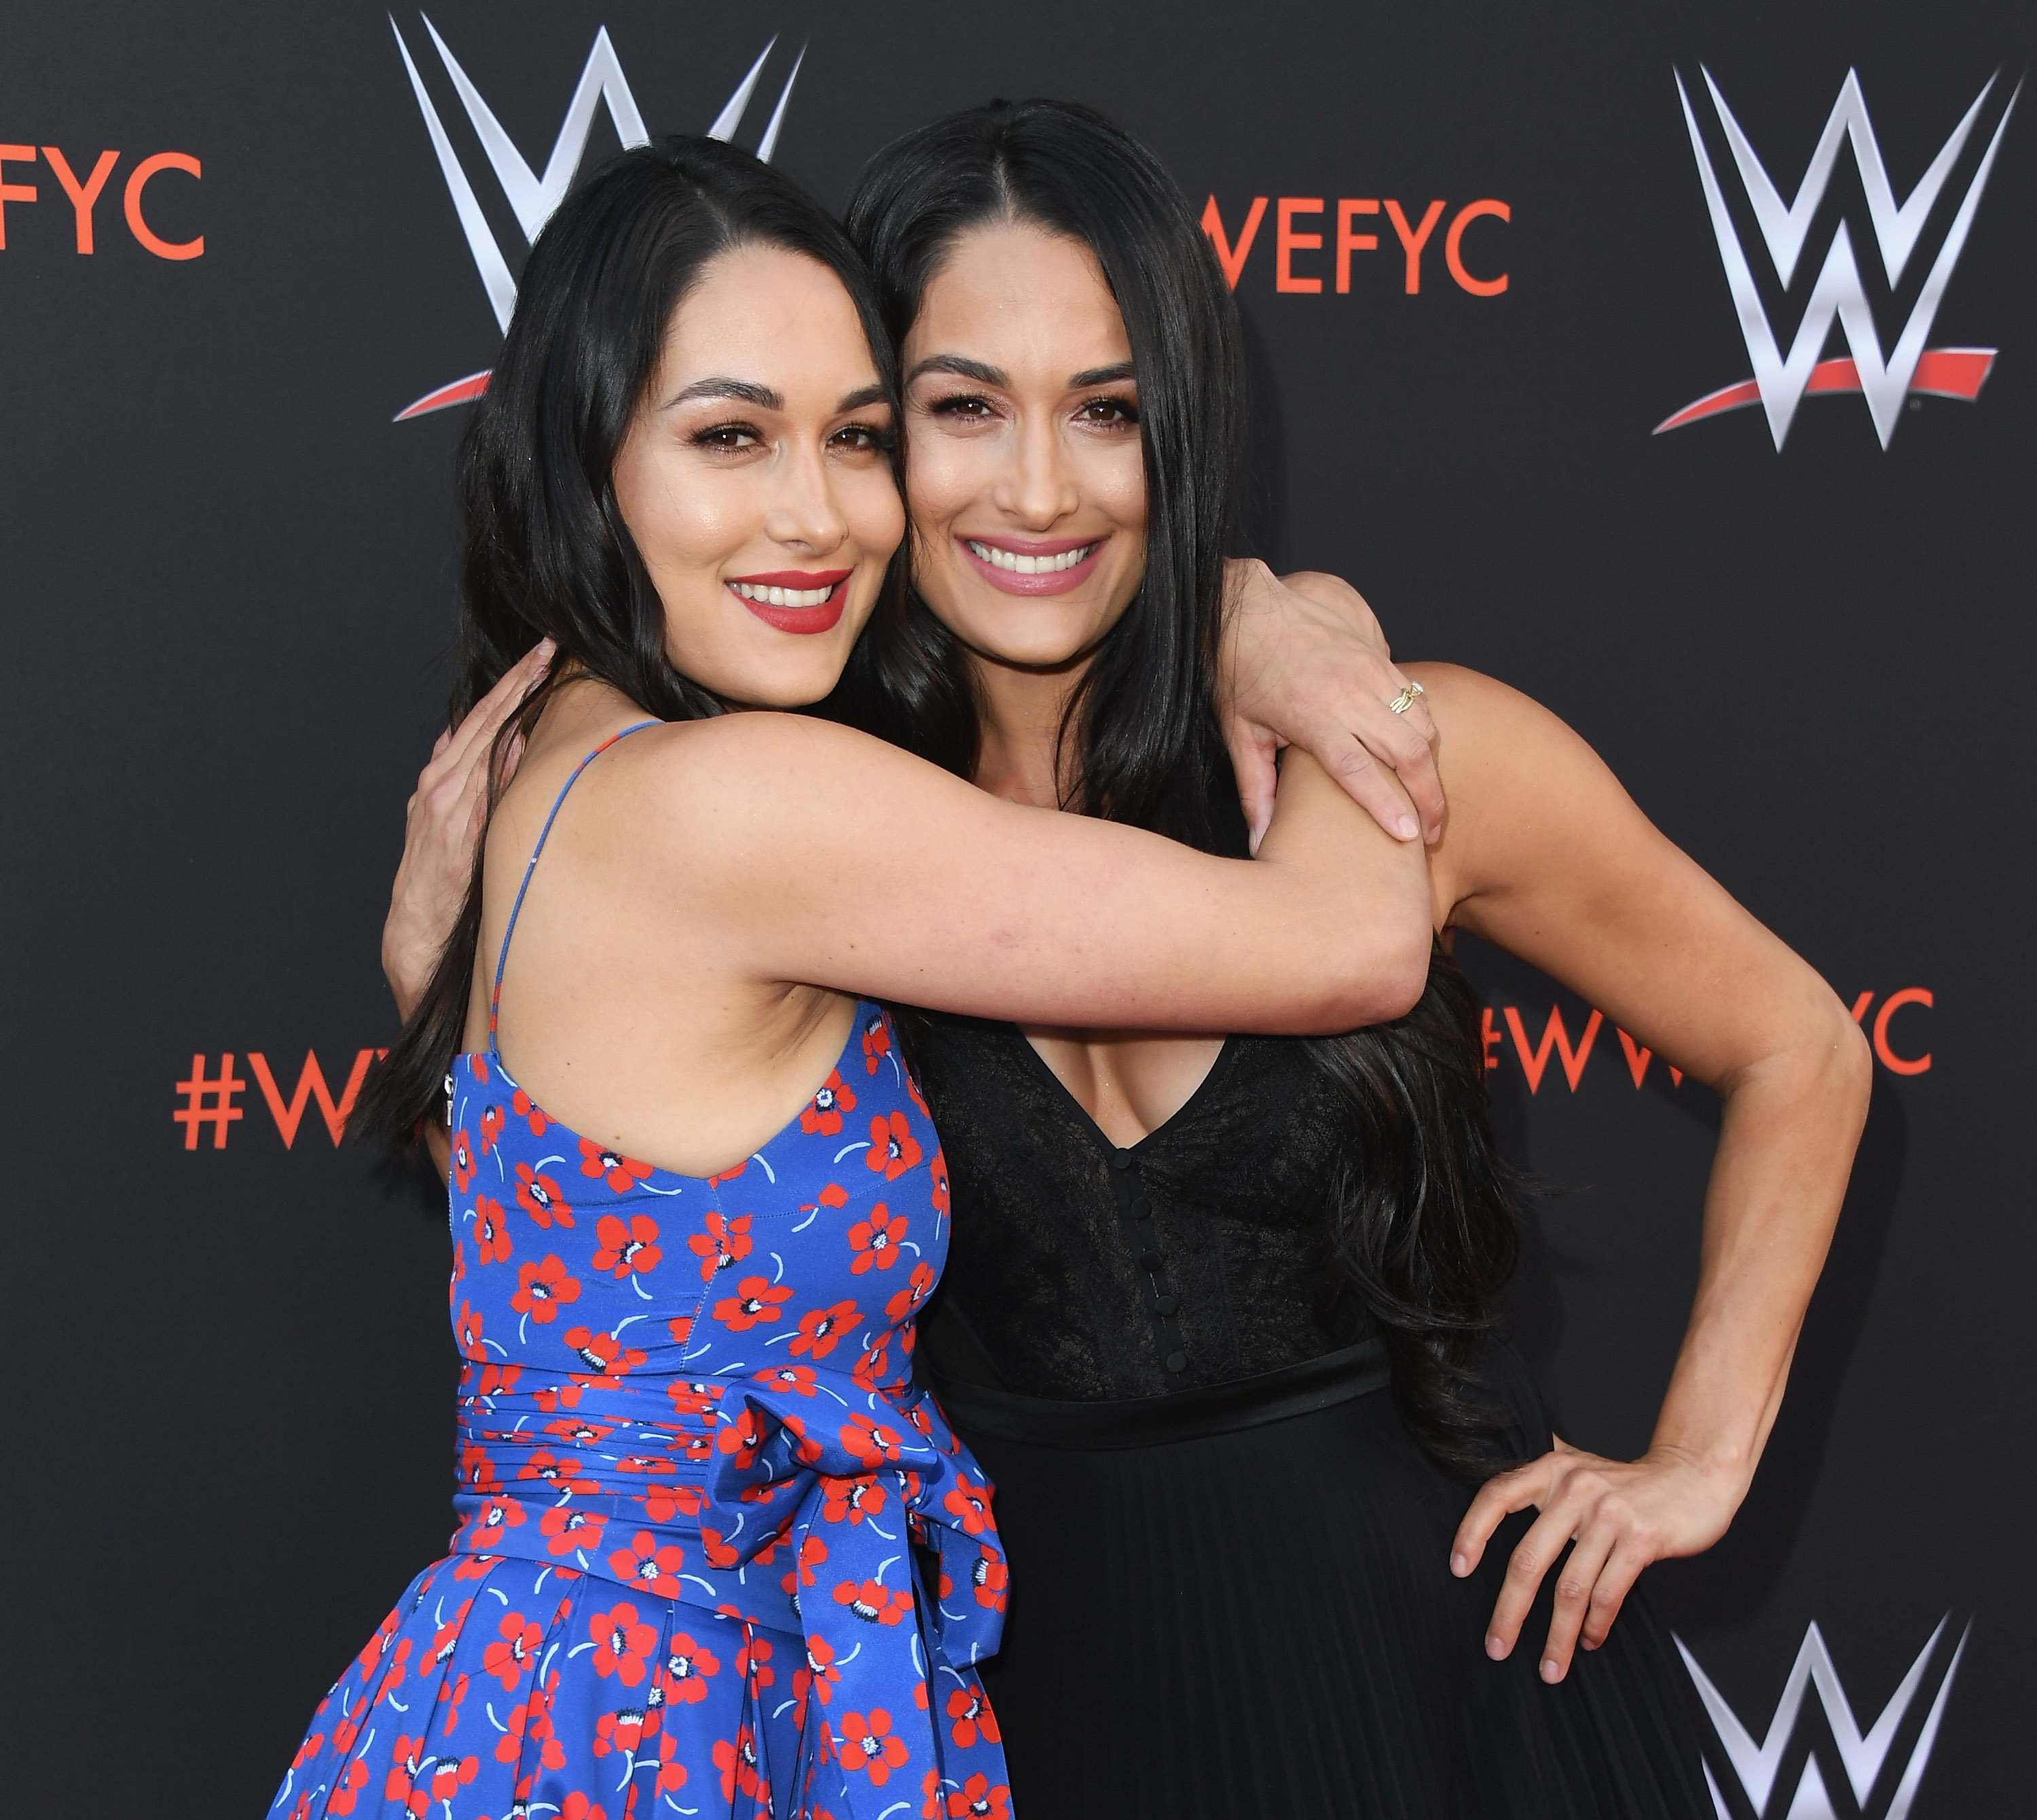 """Brie Bella and Nikki Bella attend WWE's First-Ever Emmy """"For Your Consideration"""" Event on June 6, 2018, in North Hollywood, California. 